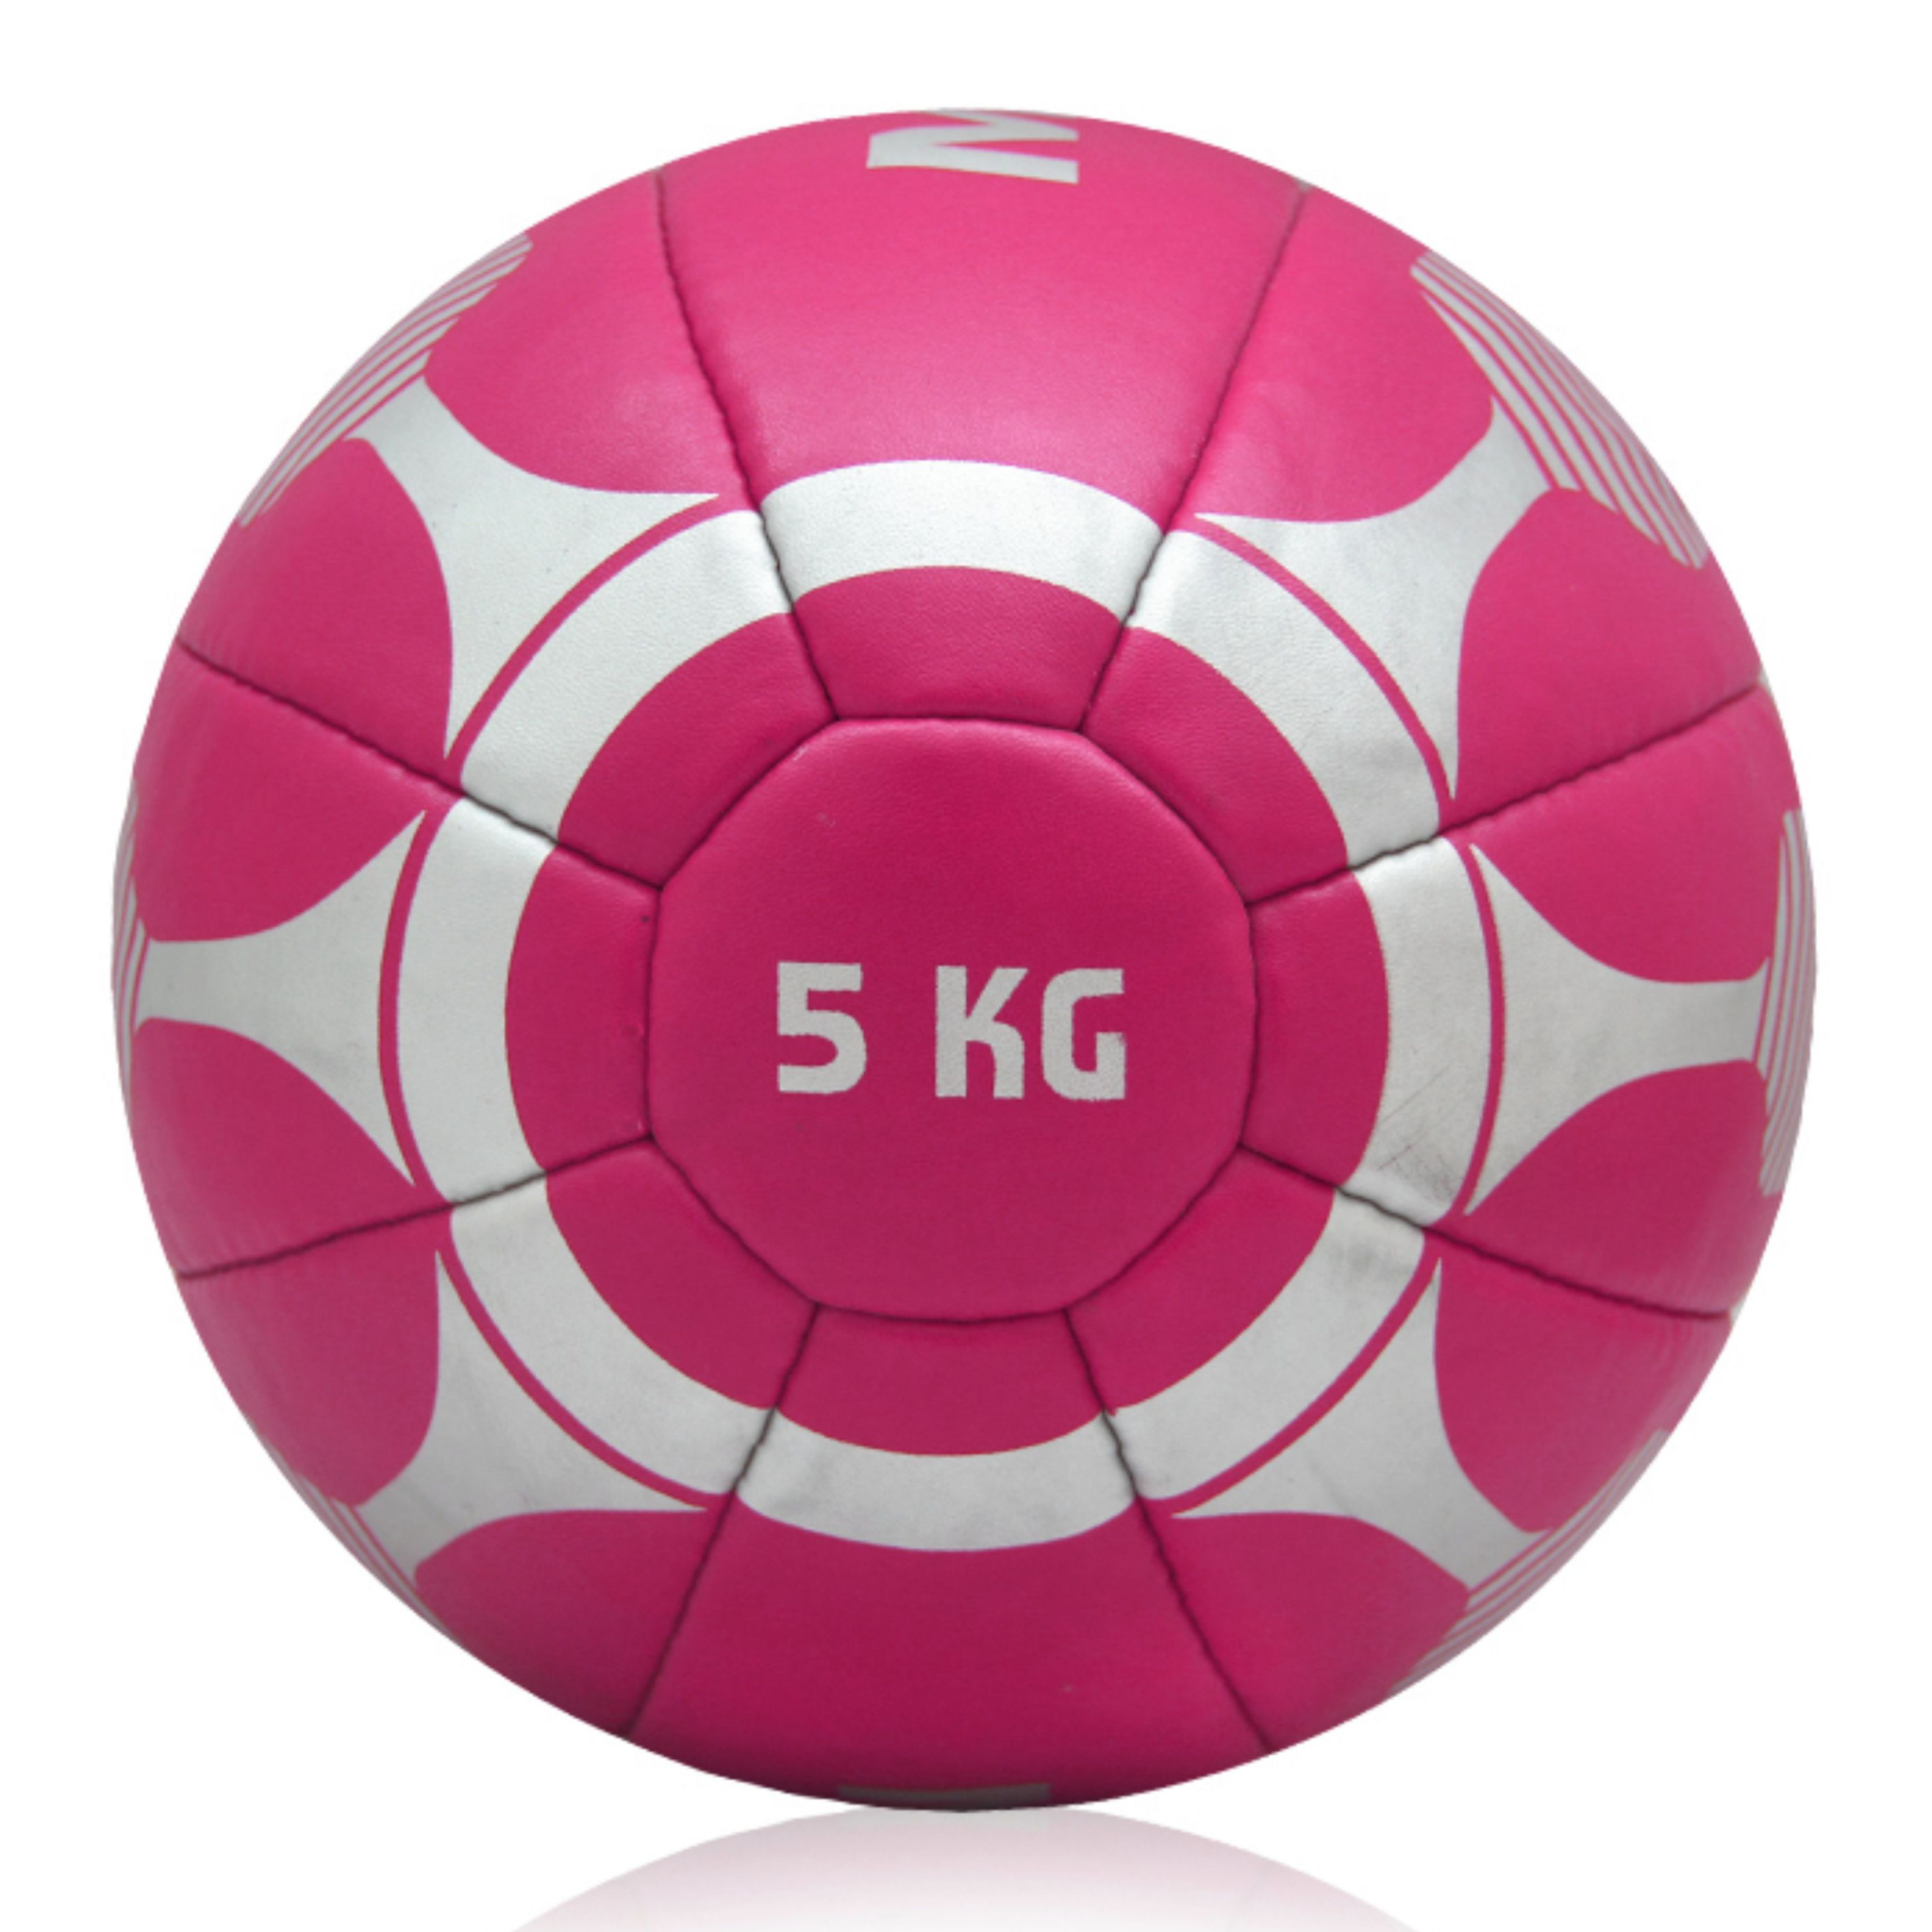 Medicine Ball 5kg, Leather No-Slip Weighted Med Ball for Weight Training, Stability, Cross Training, Core Strength, Heavy Workout Ball, Slam Medicine Ball, Exercise Balance Training Ball for Strength and Cross fit Workout. Physiotherapy Ball for Physio